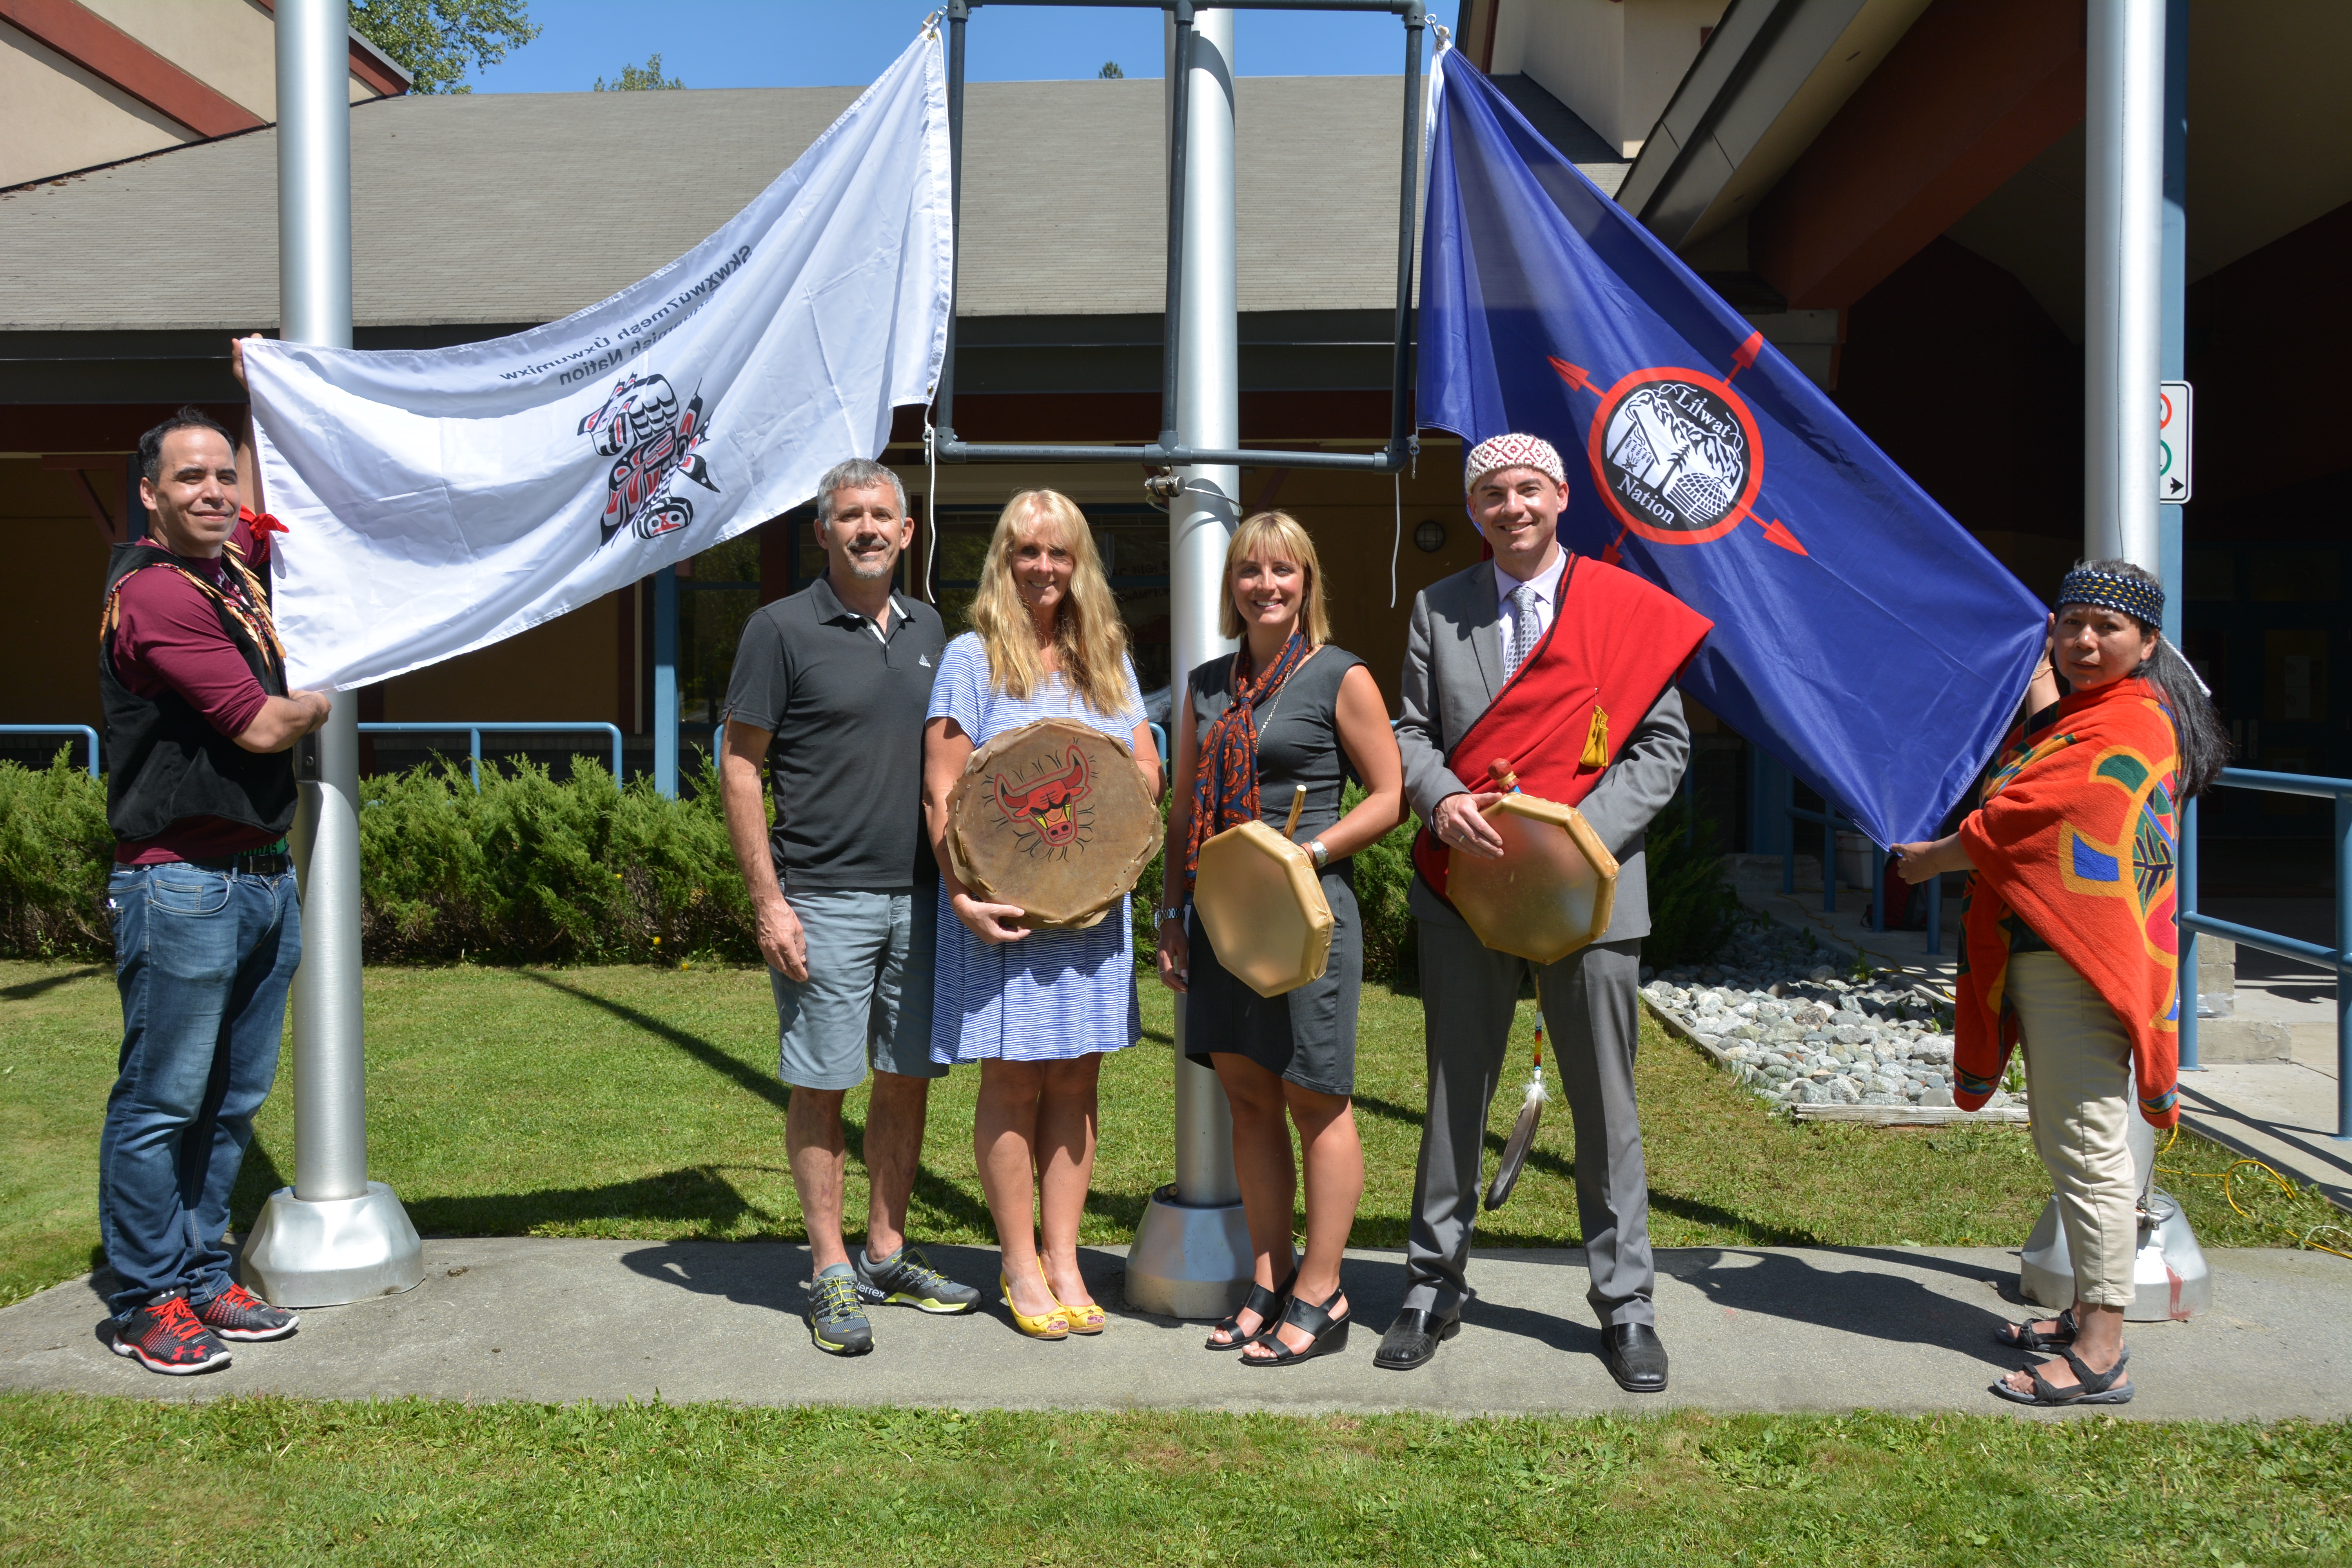 WORKING TOGETHER—Members of CUPE Local 779 (School District 48 support staff), flanked by members of the Squamish (left) and Lil'wat First Nations, helped organize the May 6 flag-raising event.